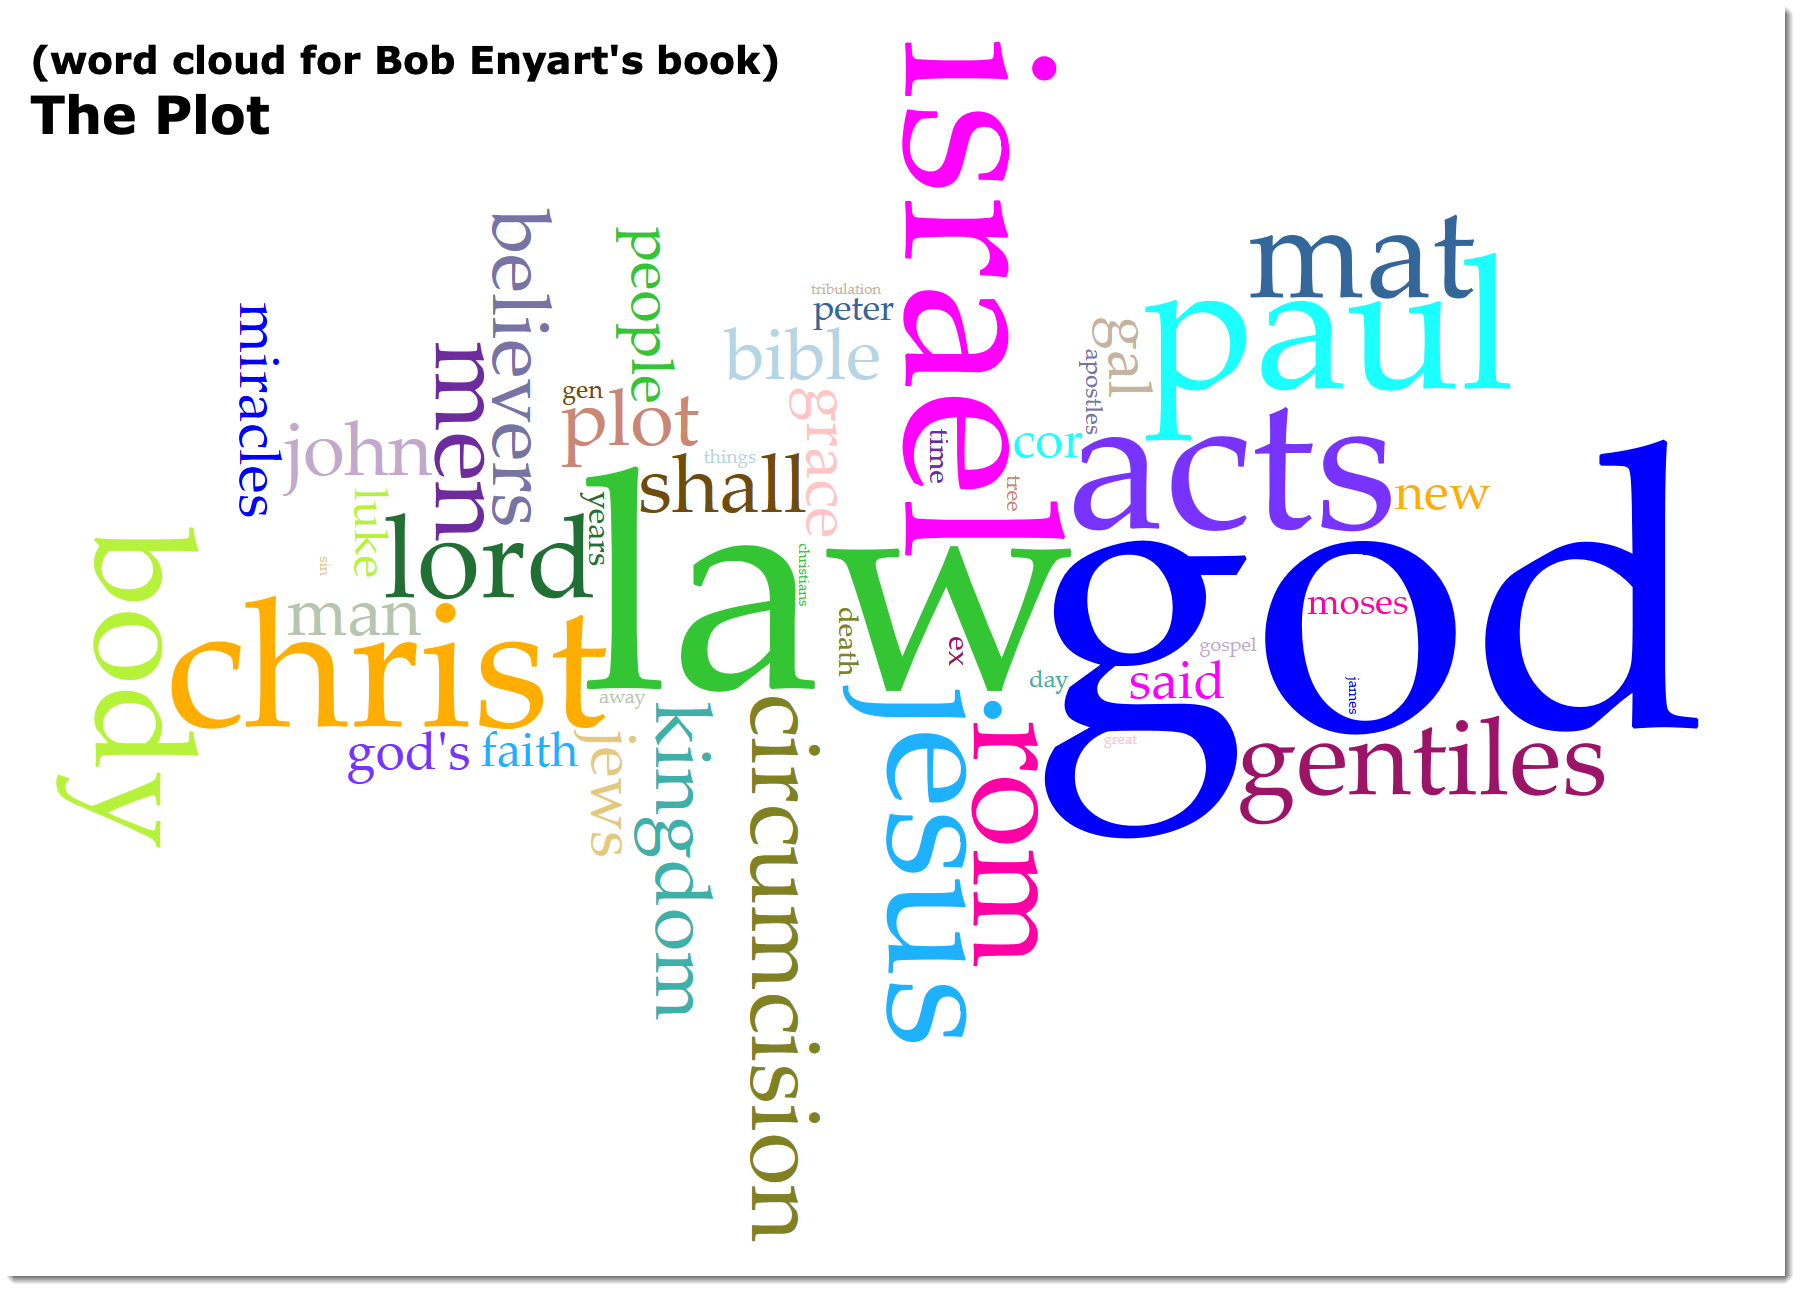 Word cloud for Bob Enyart's book, The Plot